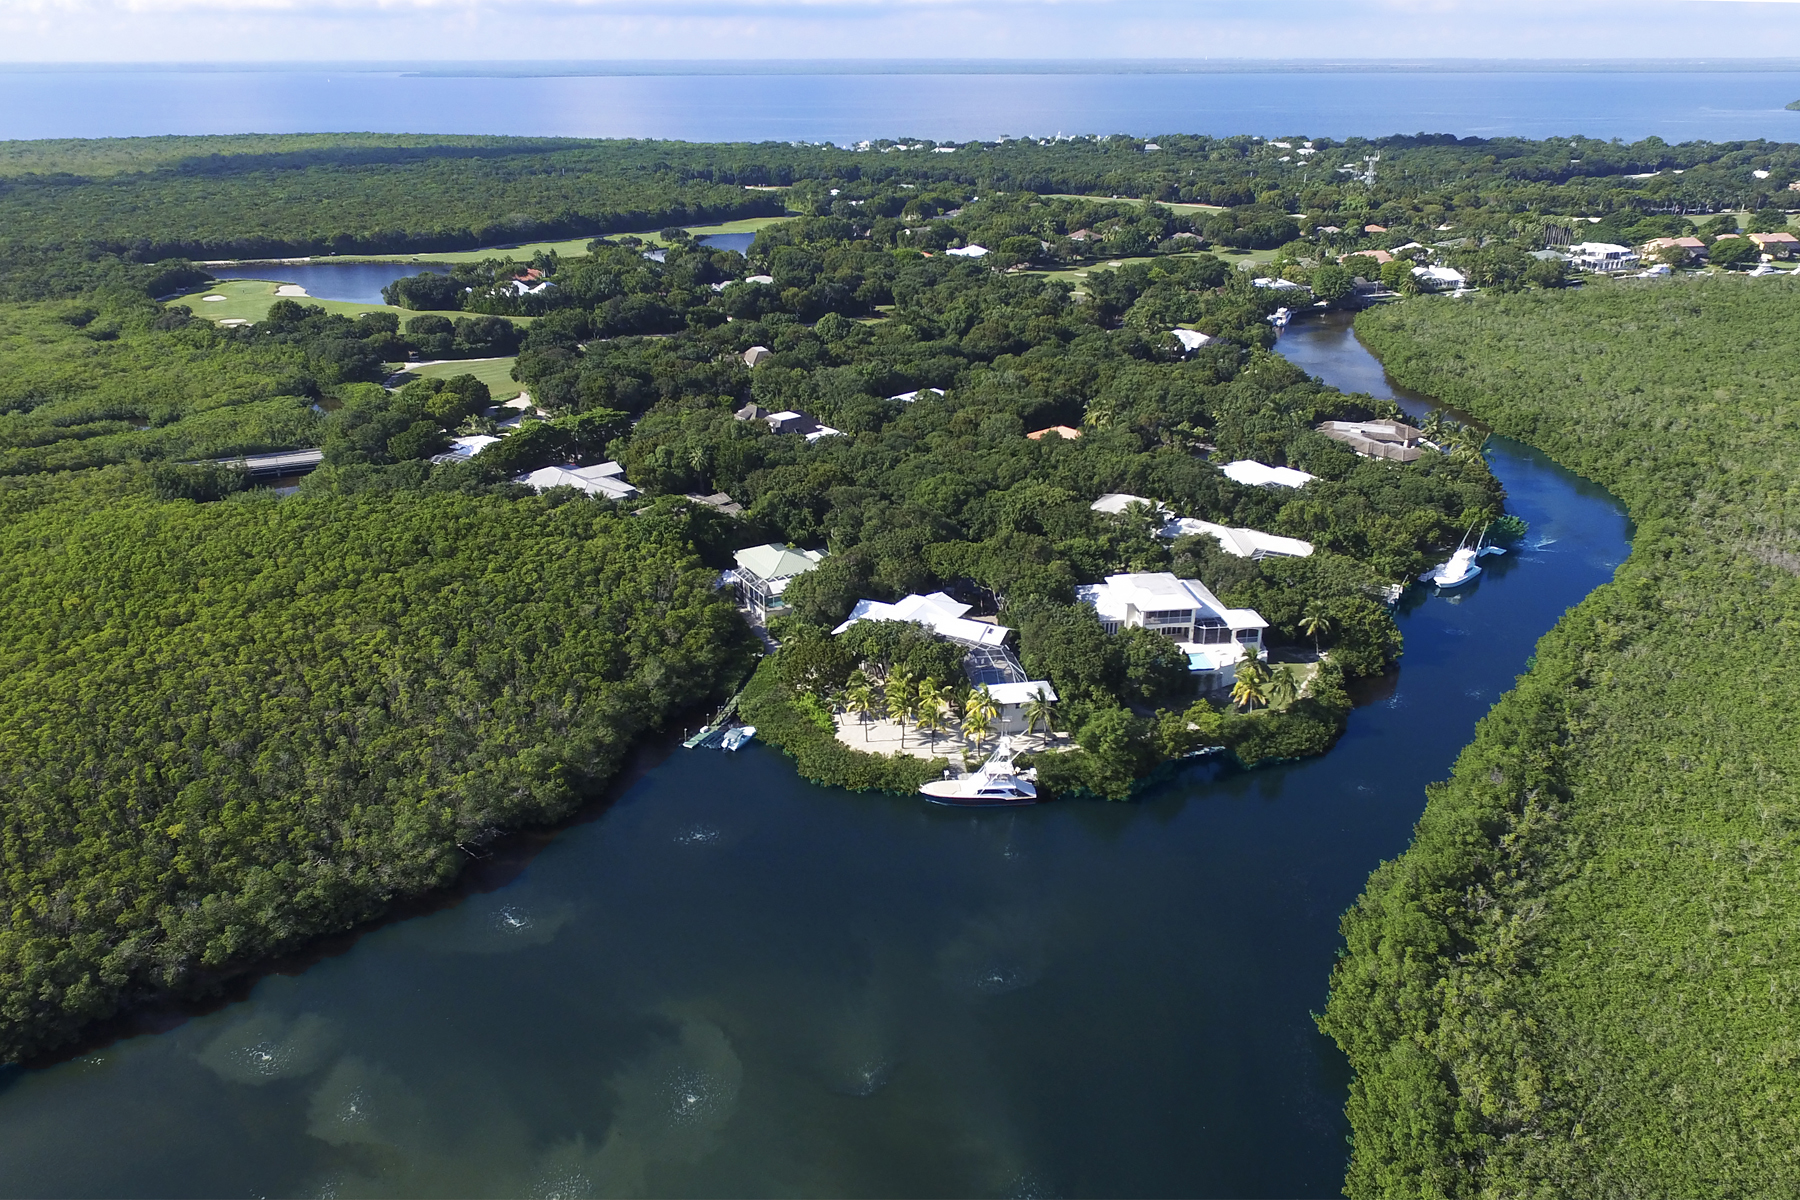 Moradia para Venda às Waterfront Home at Ocean Reef Offers Wide Canalfront Views 15 North Bridge Lane Ocean Reef Community, Key Largo, Florida, 33037 Estados Unidos